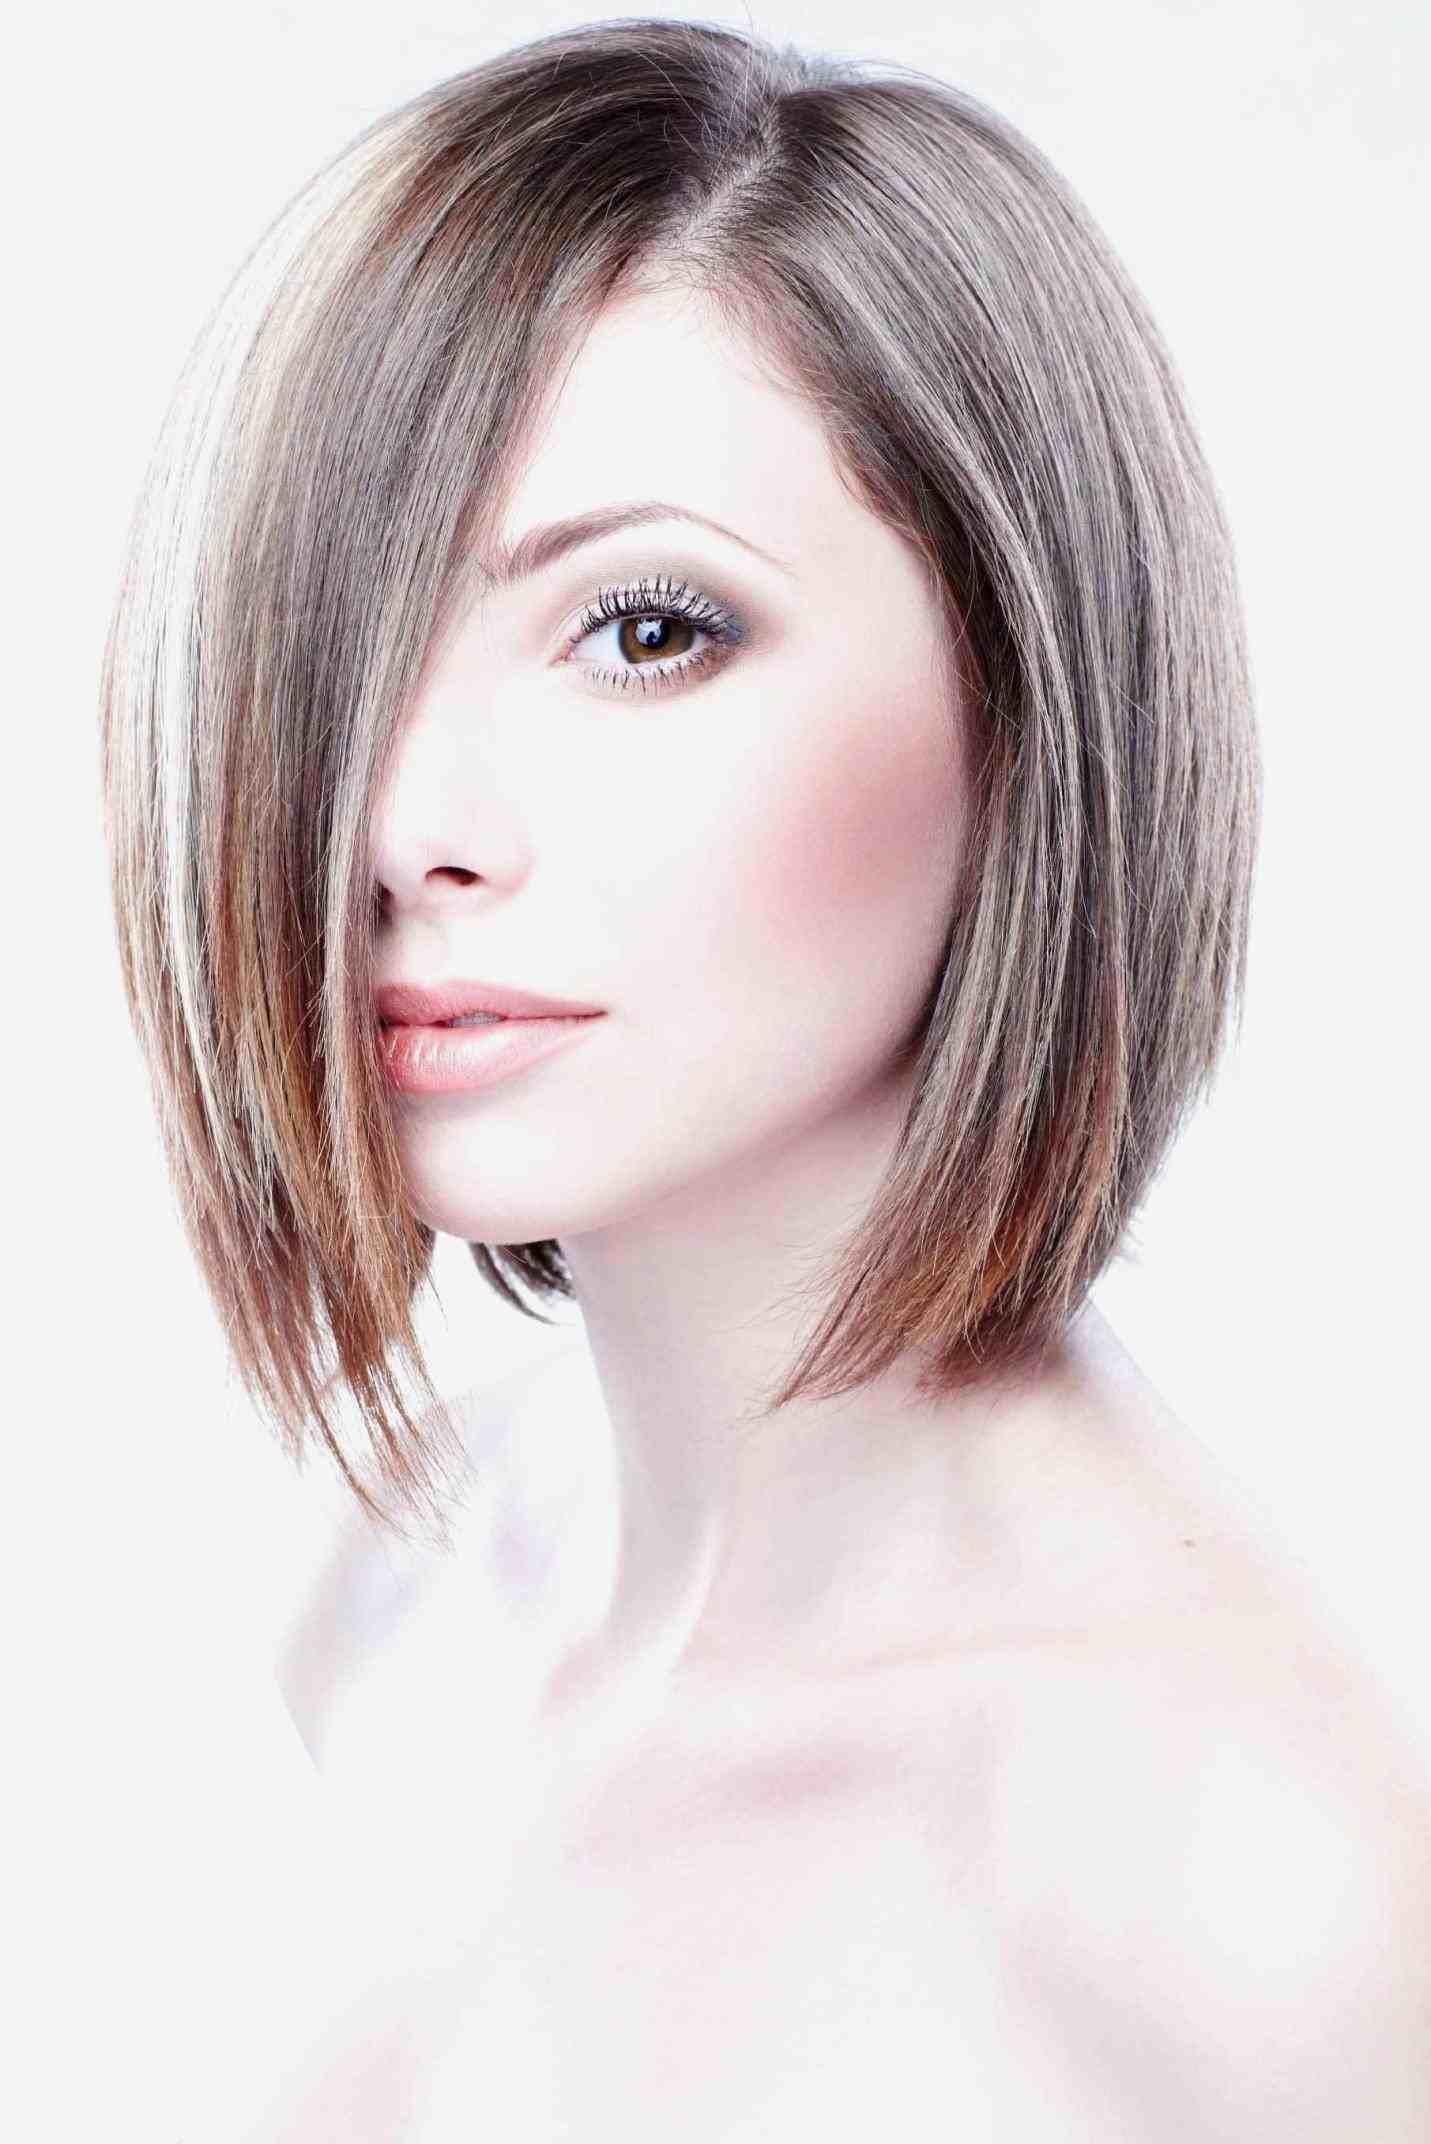 Hairstyle Feathered Around Face Gallery New Hairstyles Update